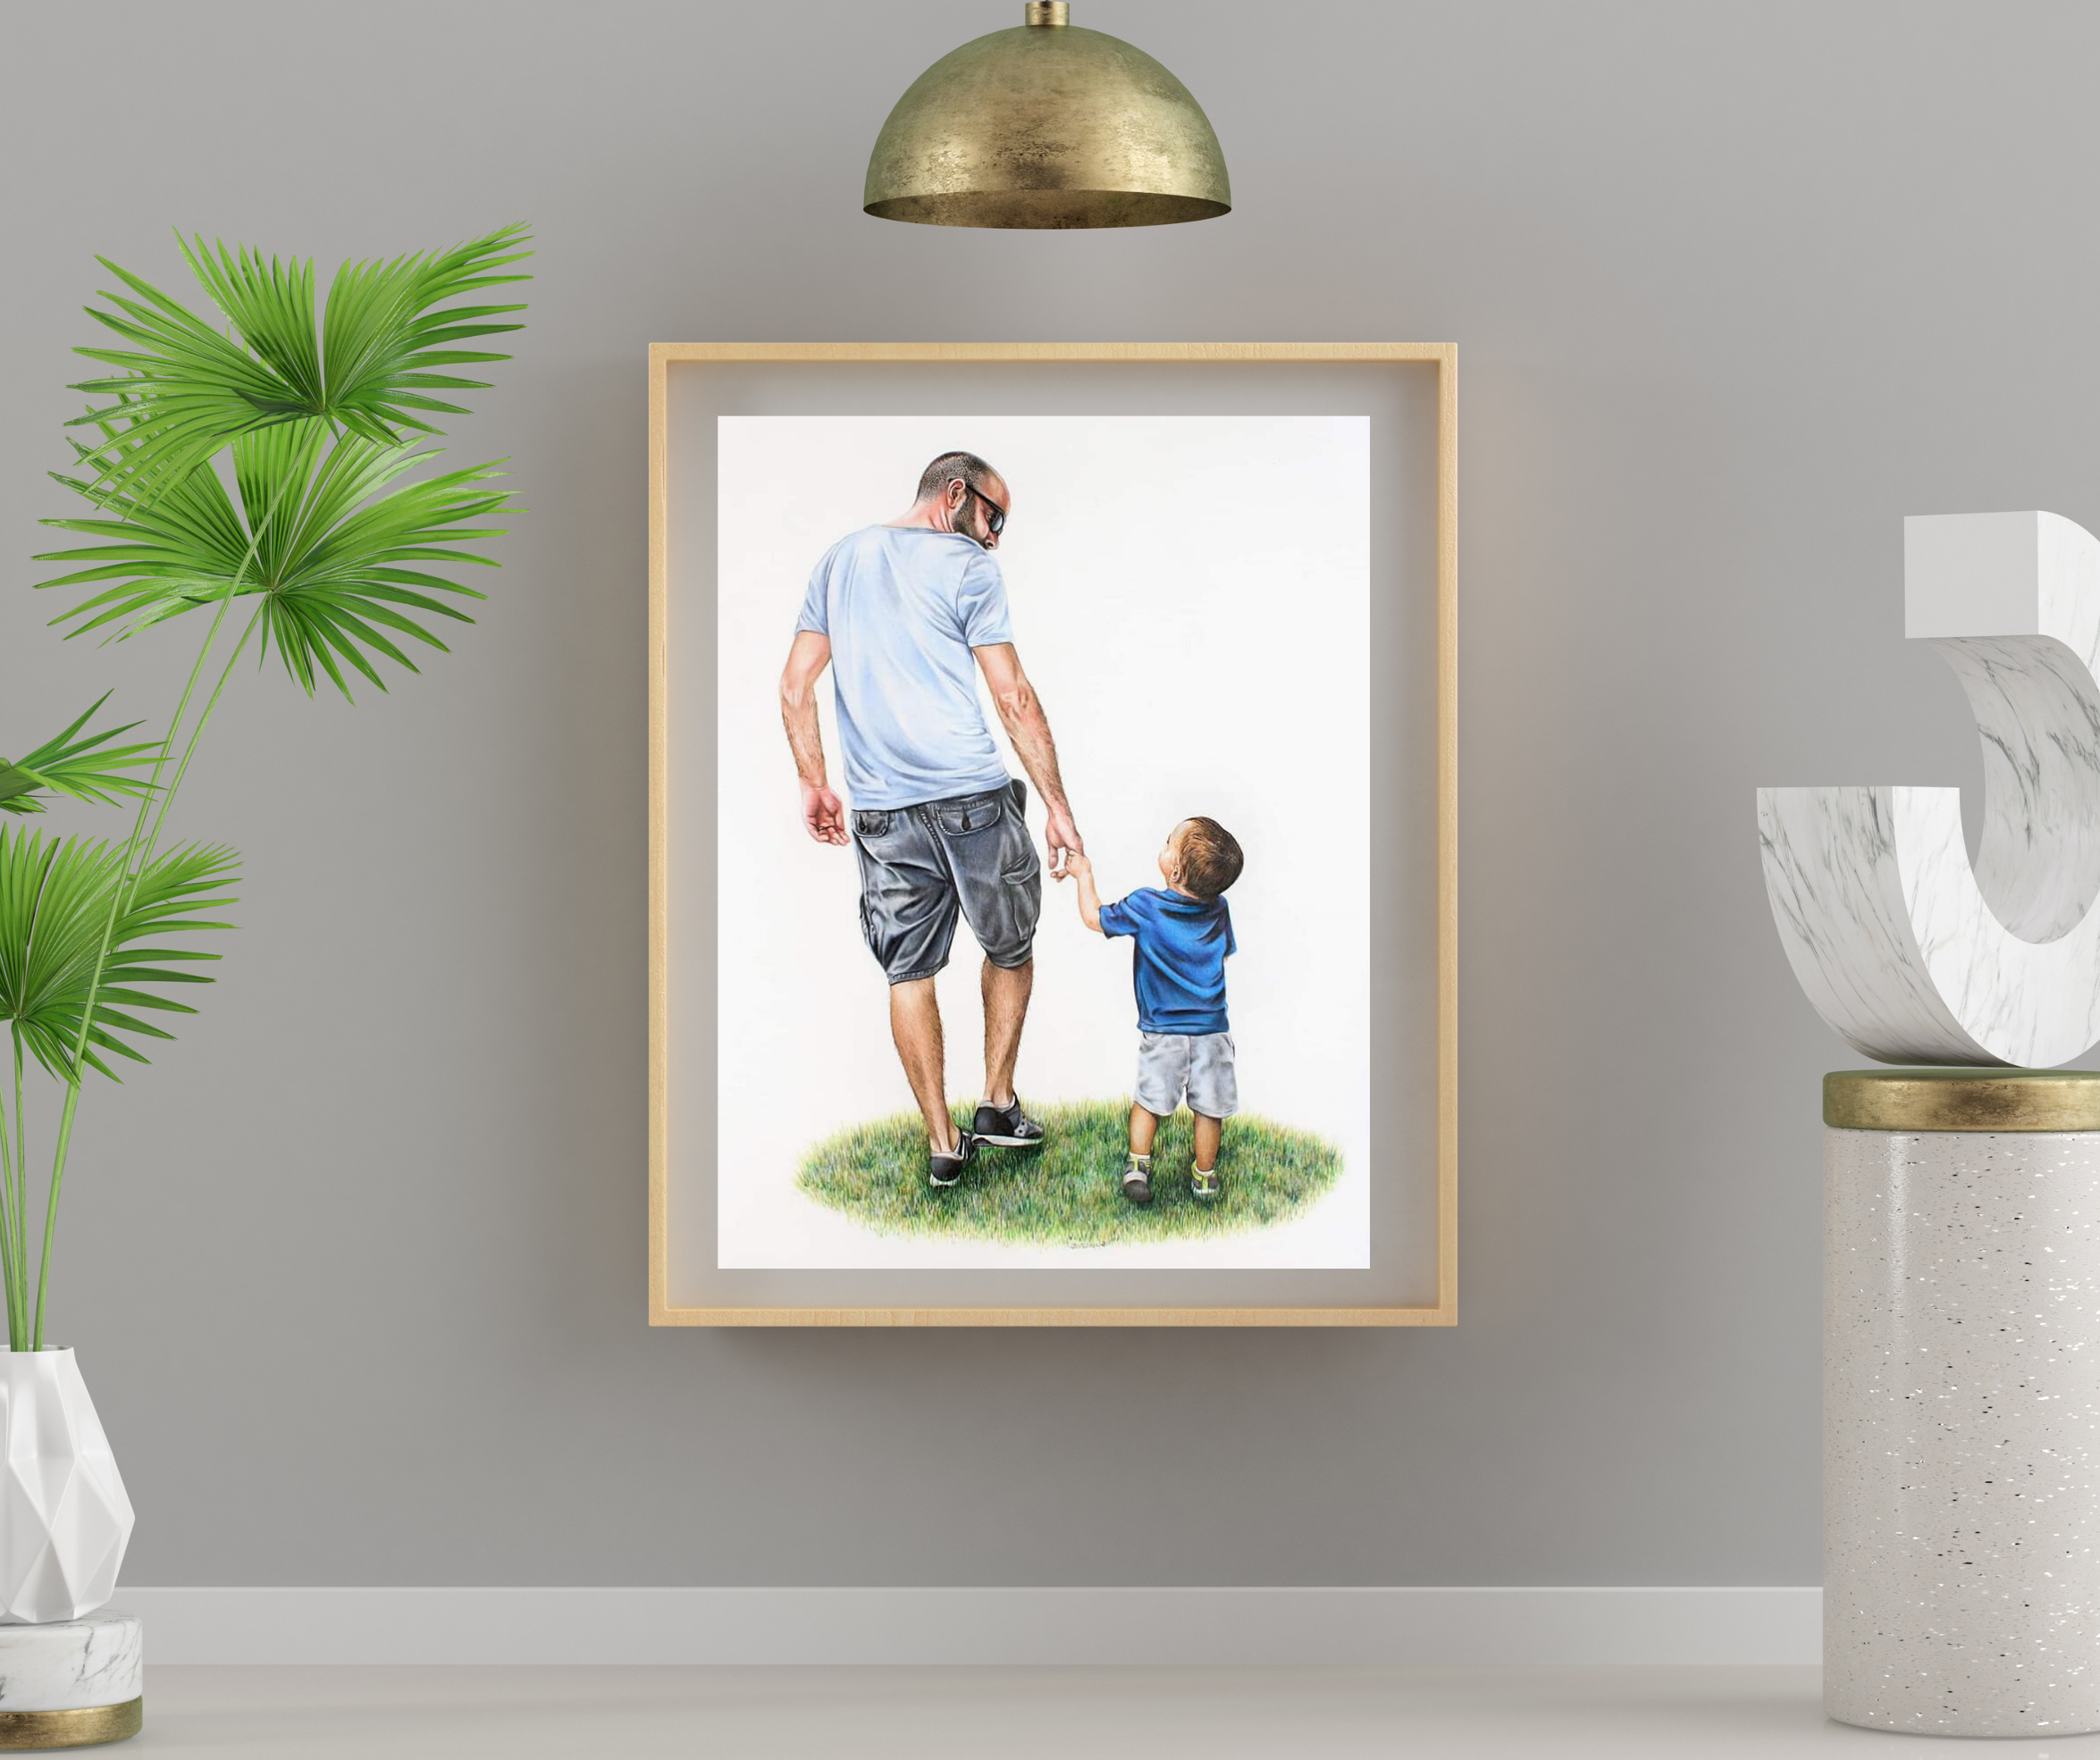 Hand Drawn custom colored pencil portrait of a father and son holding hands, Indianapolis artist spe